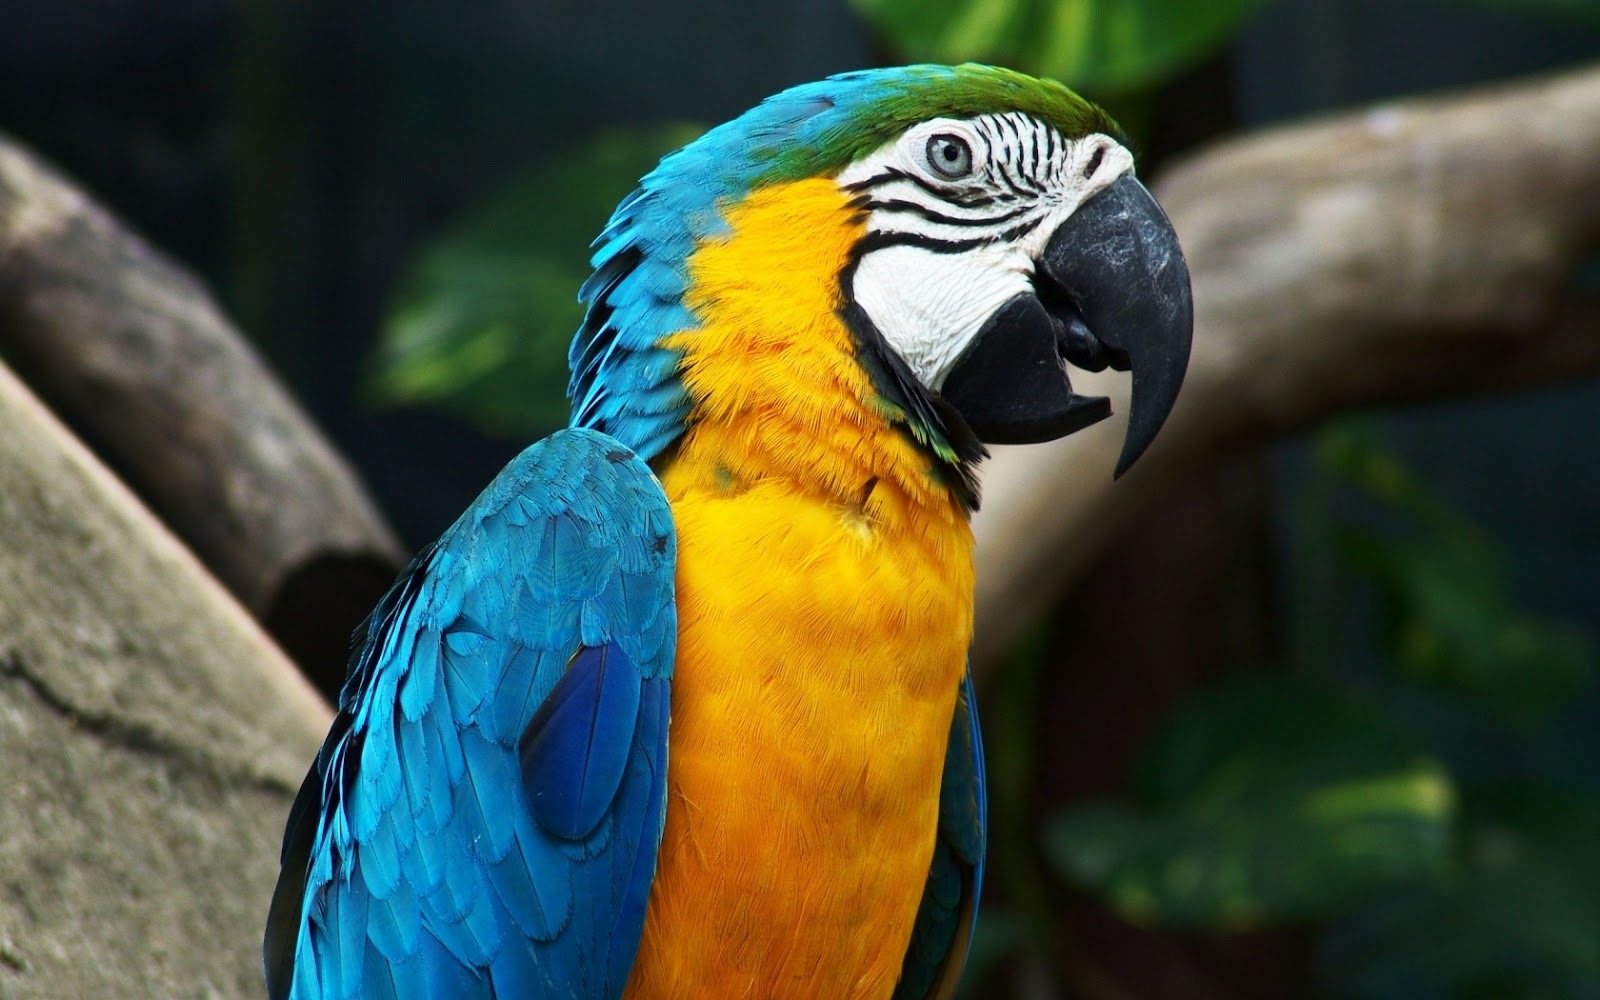 Cute Parakeet Wallpaper Top 47 Most Dashing And Beautiful Parrot Wallpapers In Hd